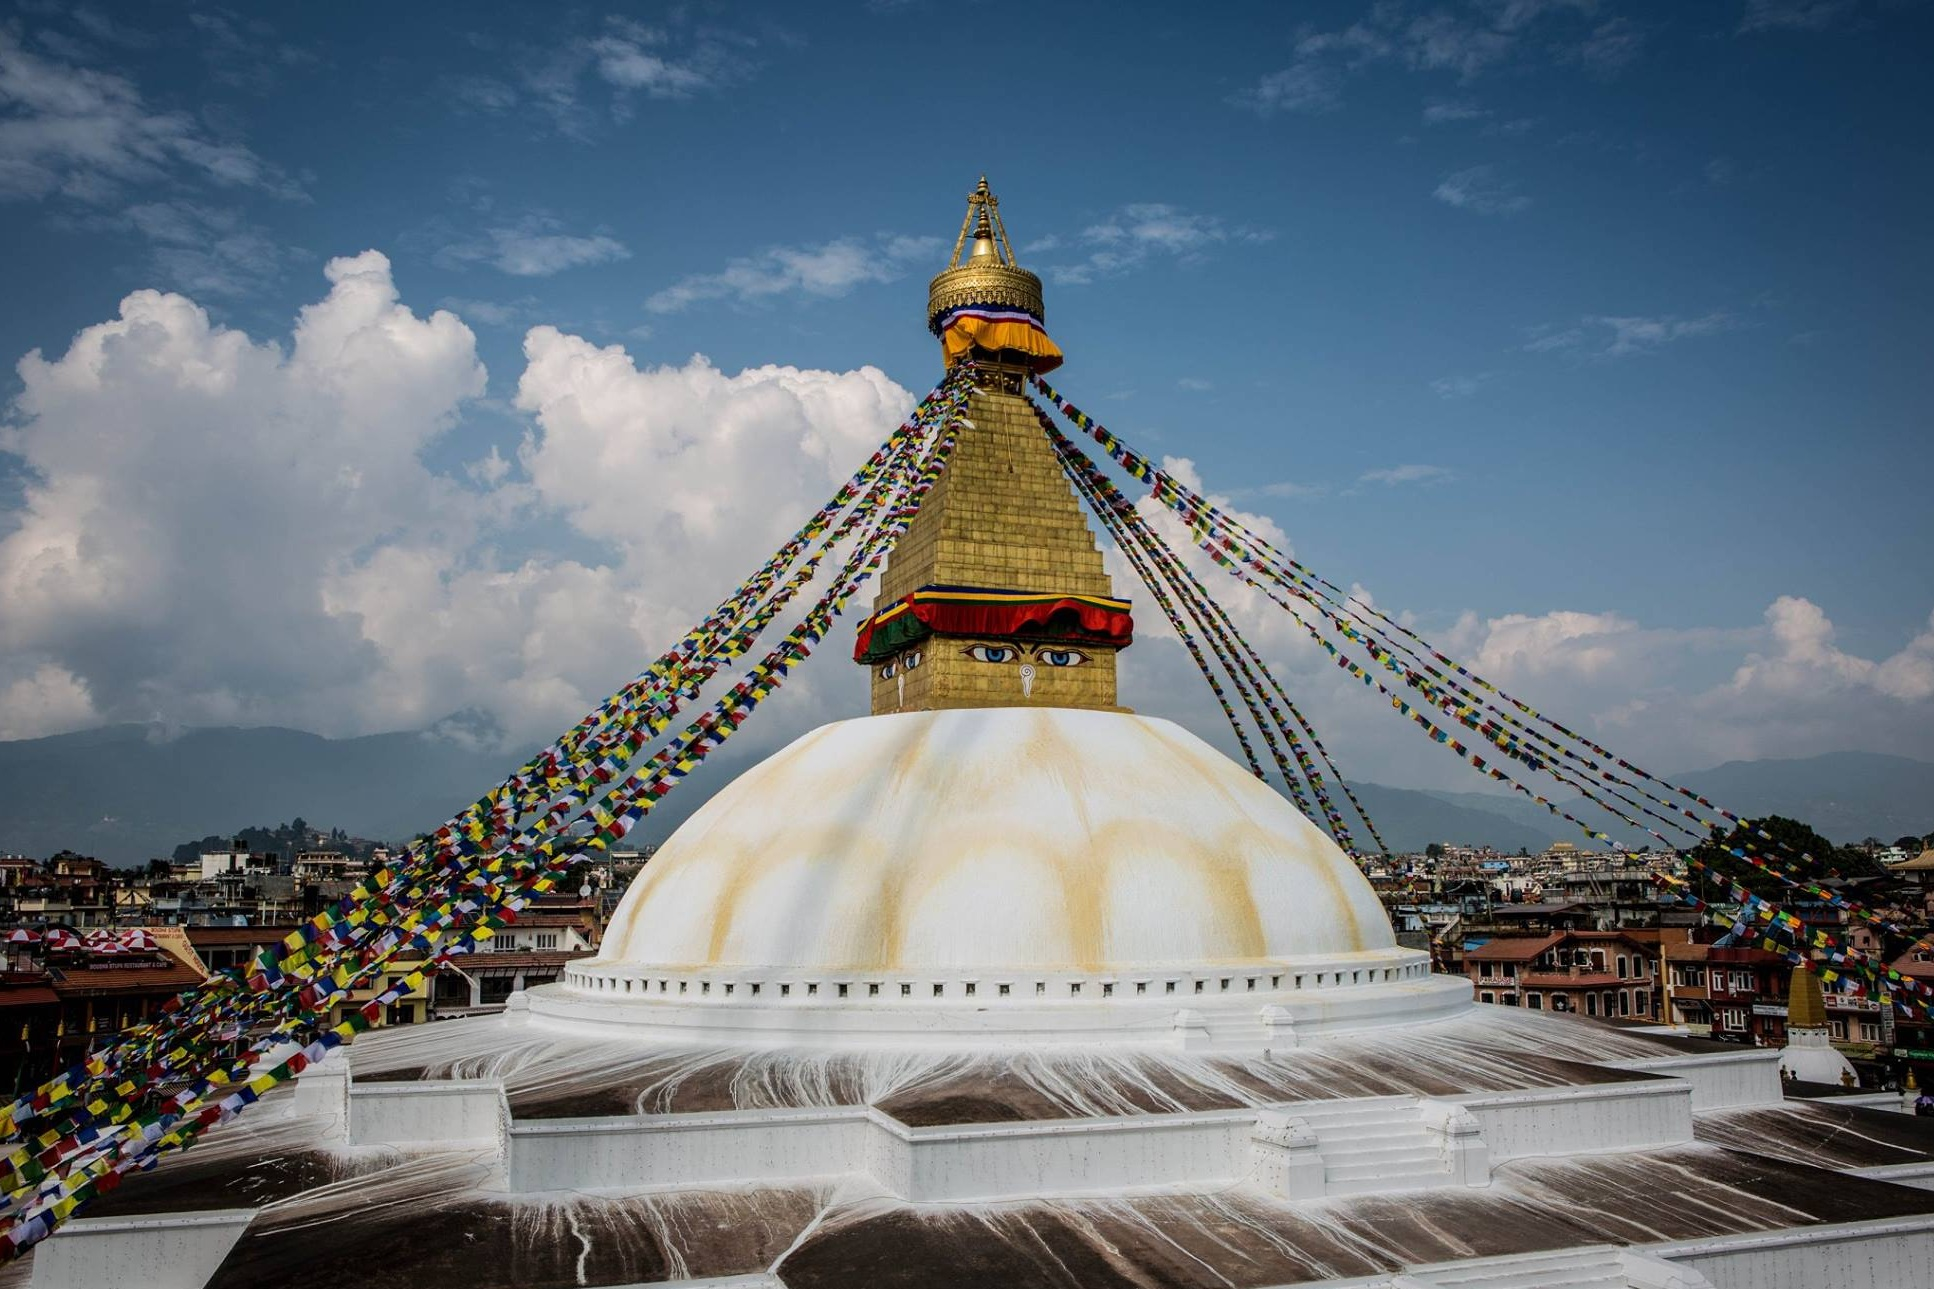 Boudhanath Stupa - The heart of Boudha, the Tibetan quarter of Kathmandu, surrounded by dozens of monasteries from every school of Buddhism. This is the Jokhang of Nepal.